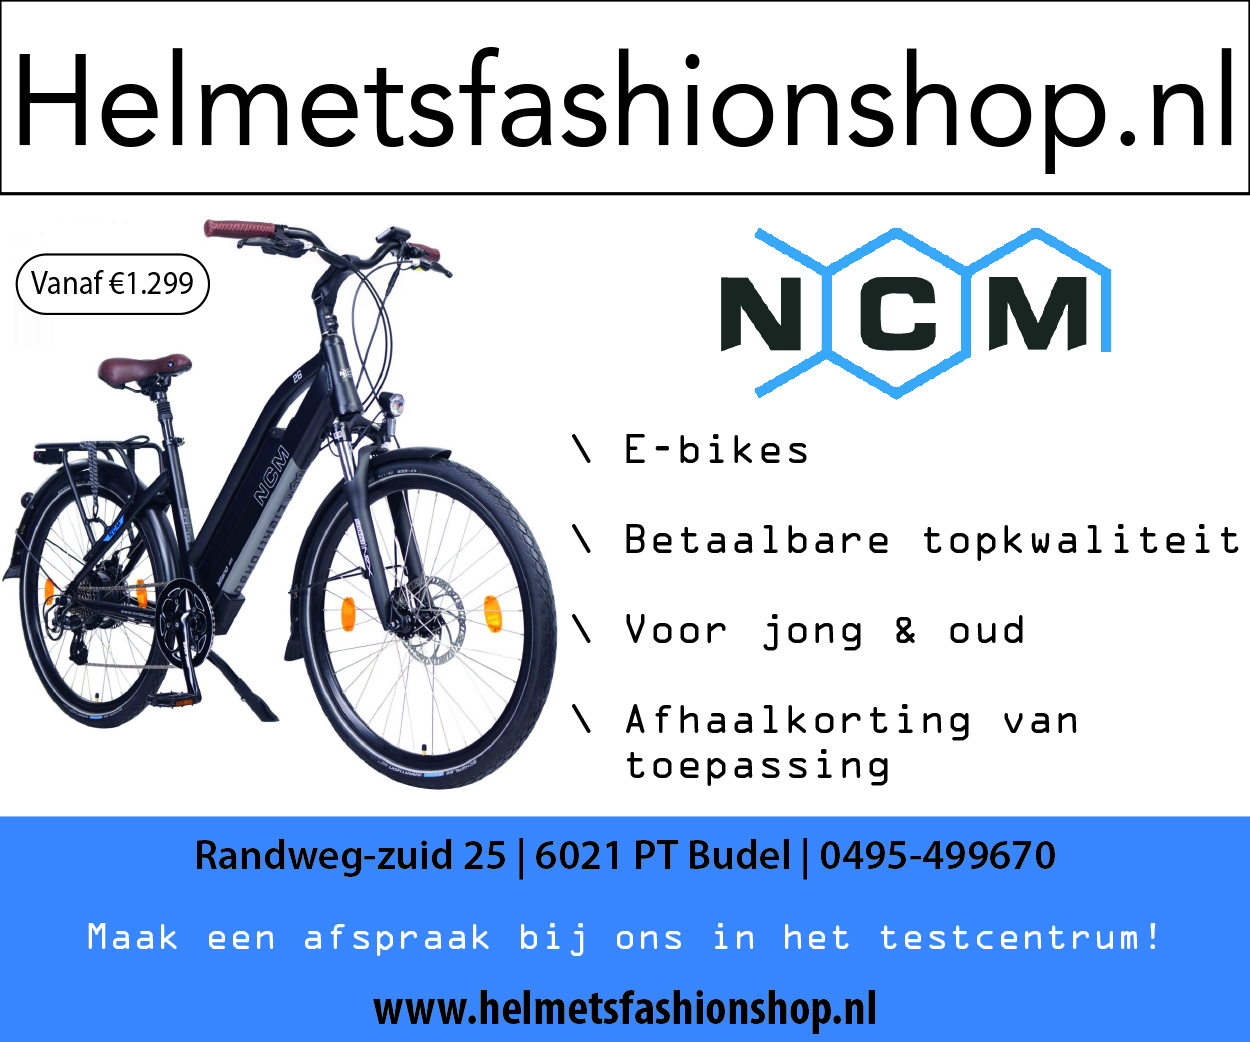 Helmetsfashionshop.nl-advertentie.jpg